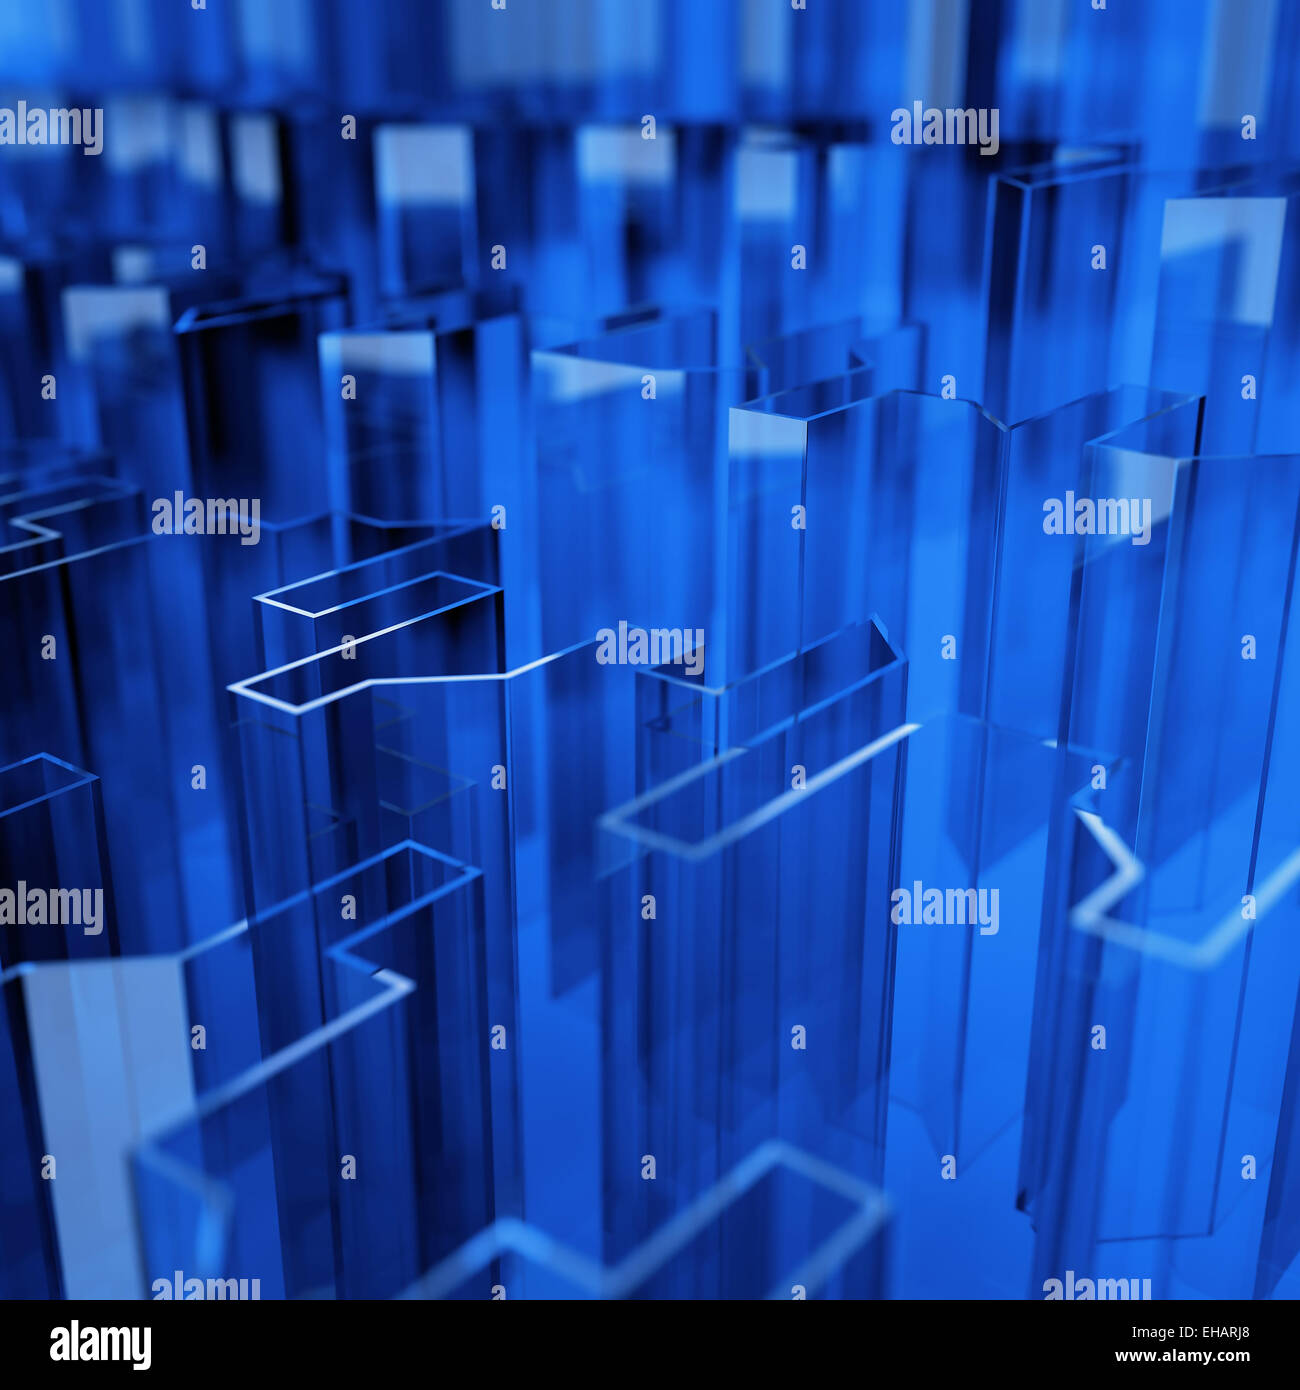 blue glass acute angled abstraction - Stock Image